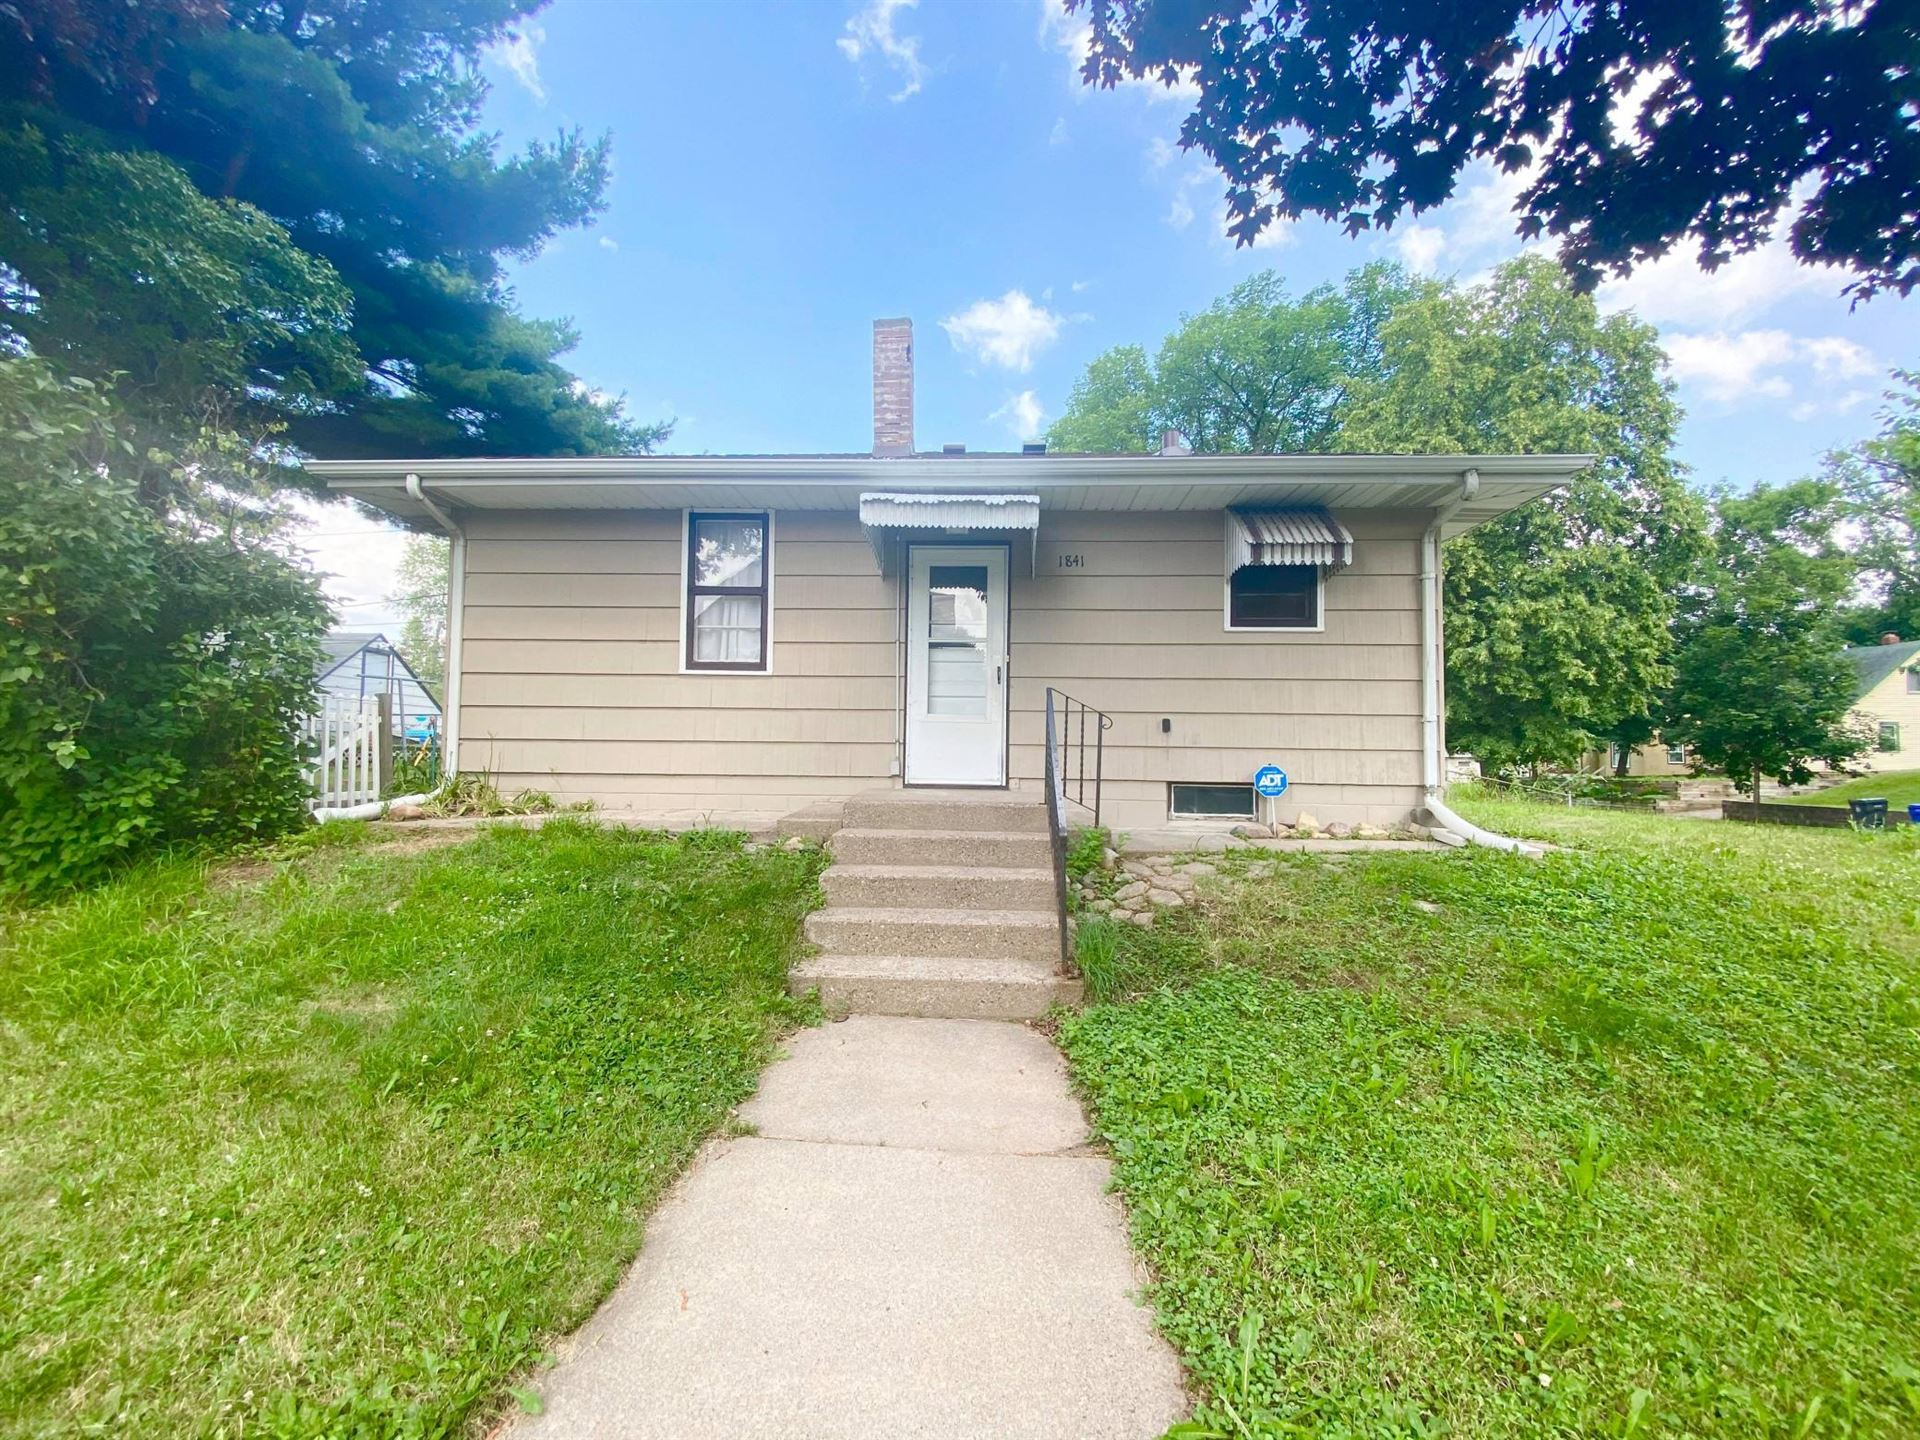 1841 Minnehaha Avenue E, Saint Paul, MN 55119 - #: 5621427